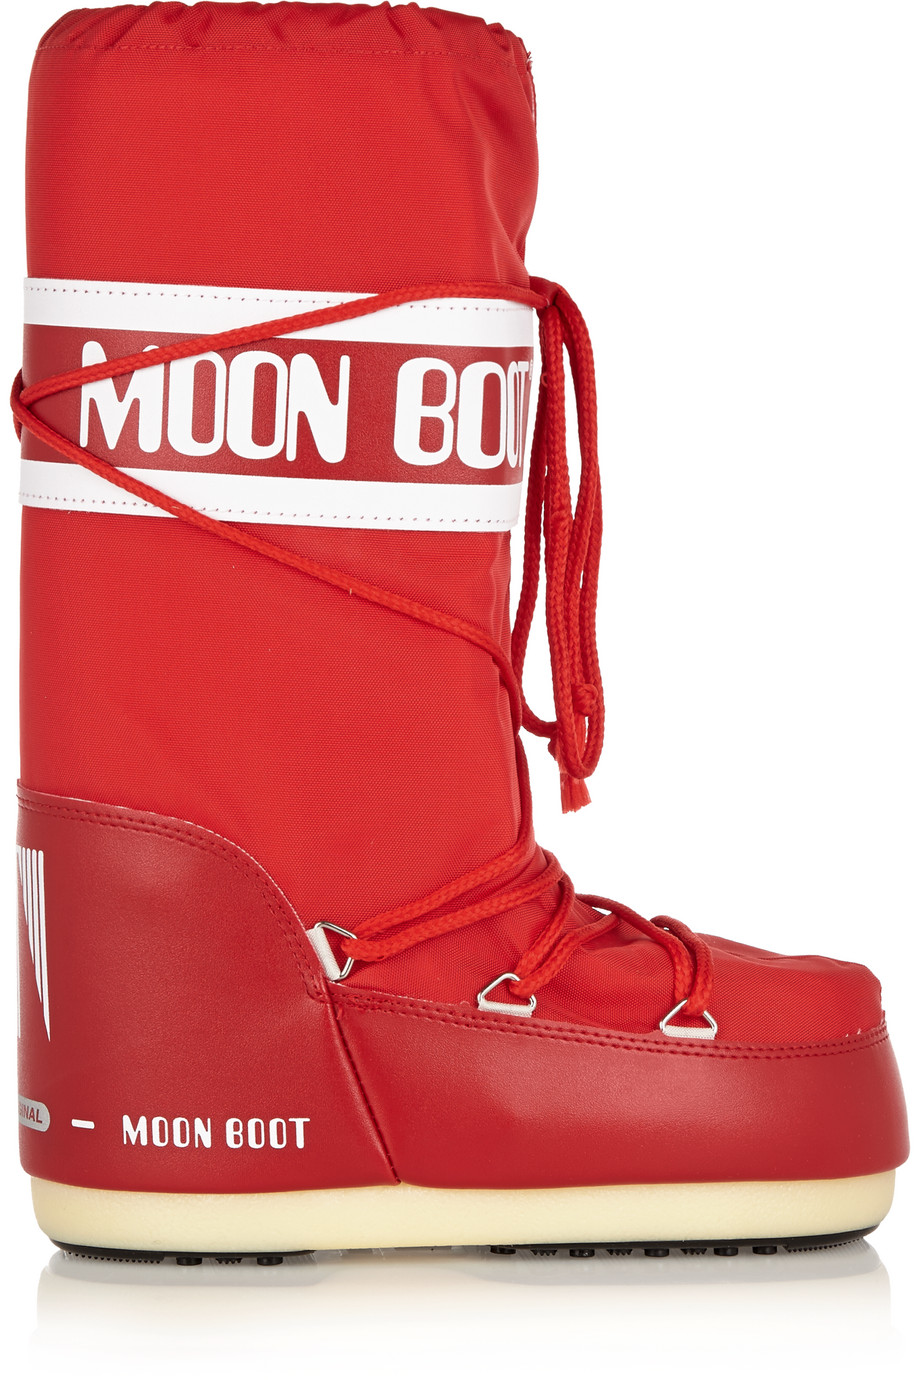 Moon Boot Piqué-Shell and Faux Leather Boots, Size: 35/38